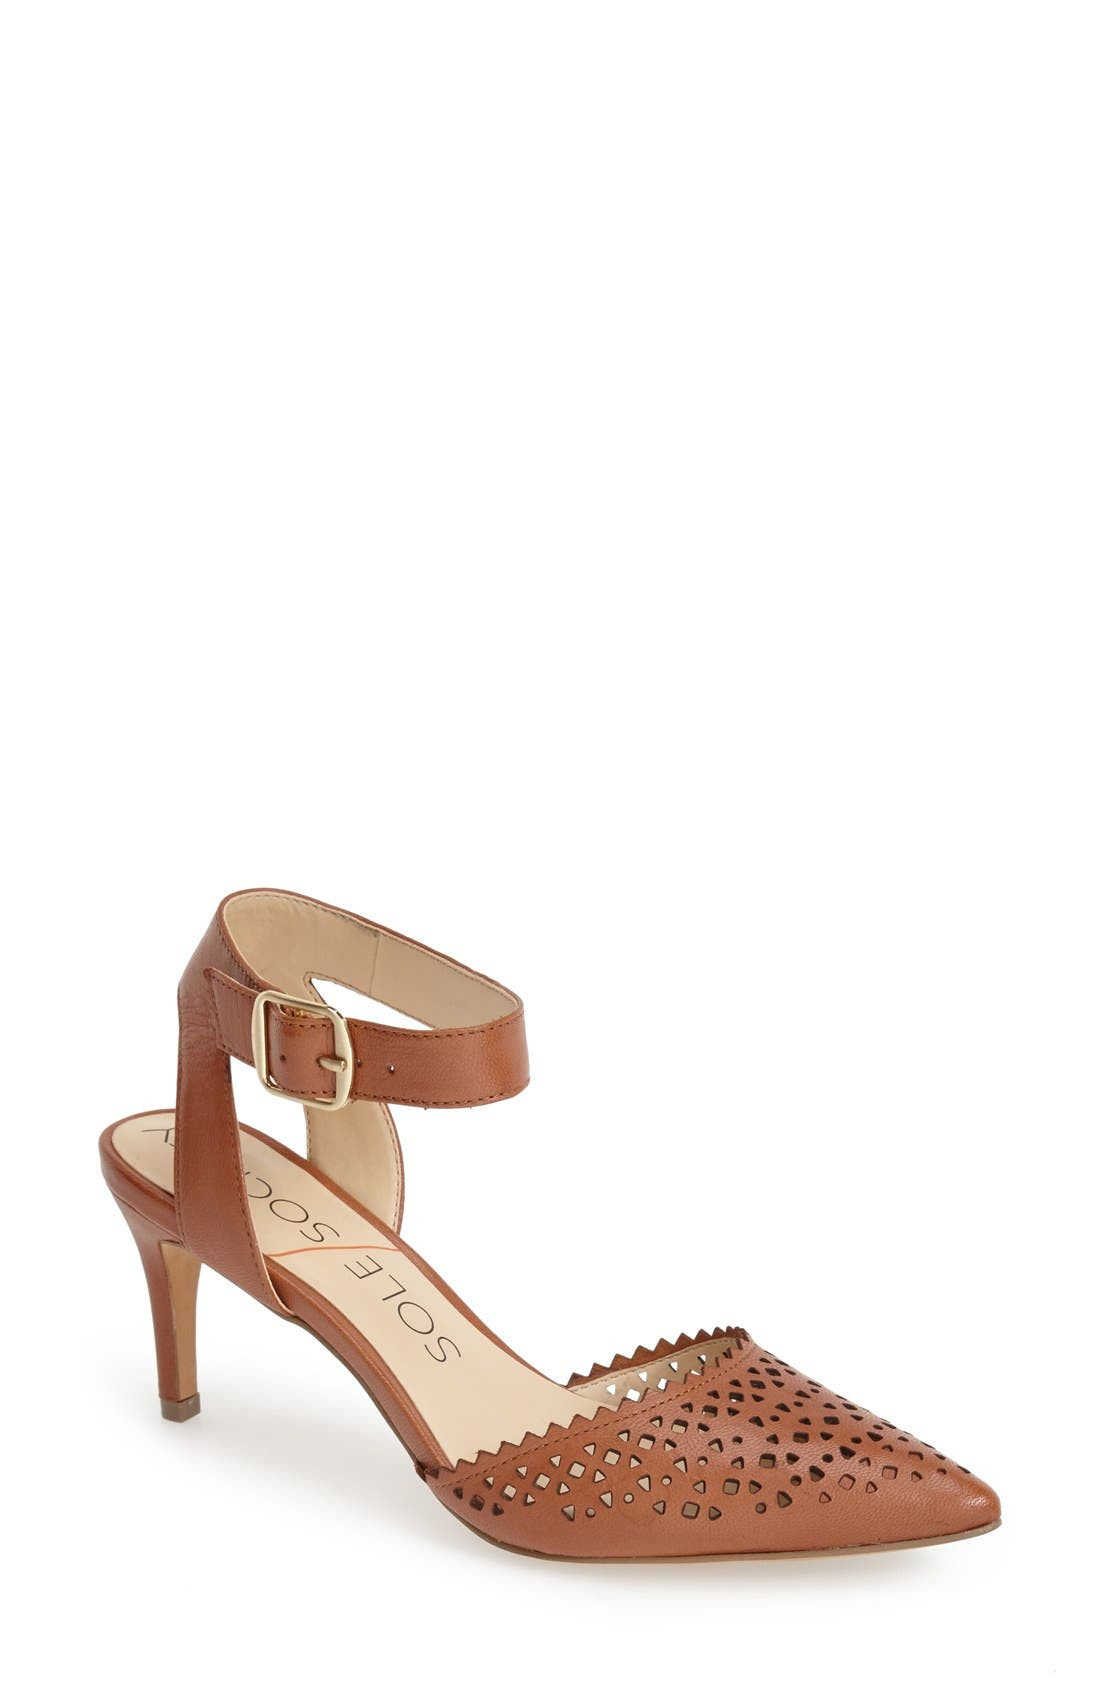 Alternate Image 1 Selected - Sole Society 'Emma' Ankle Strap Pump (Women)